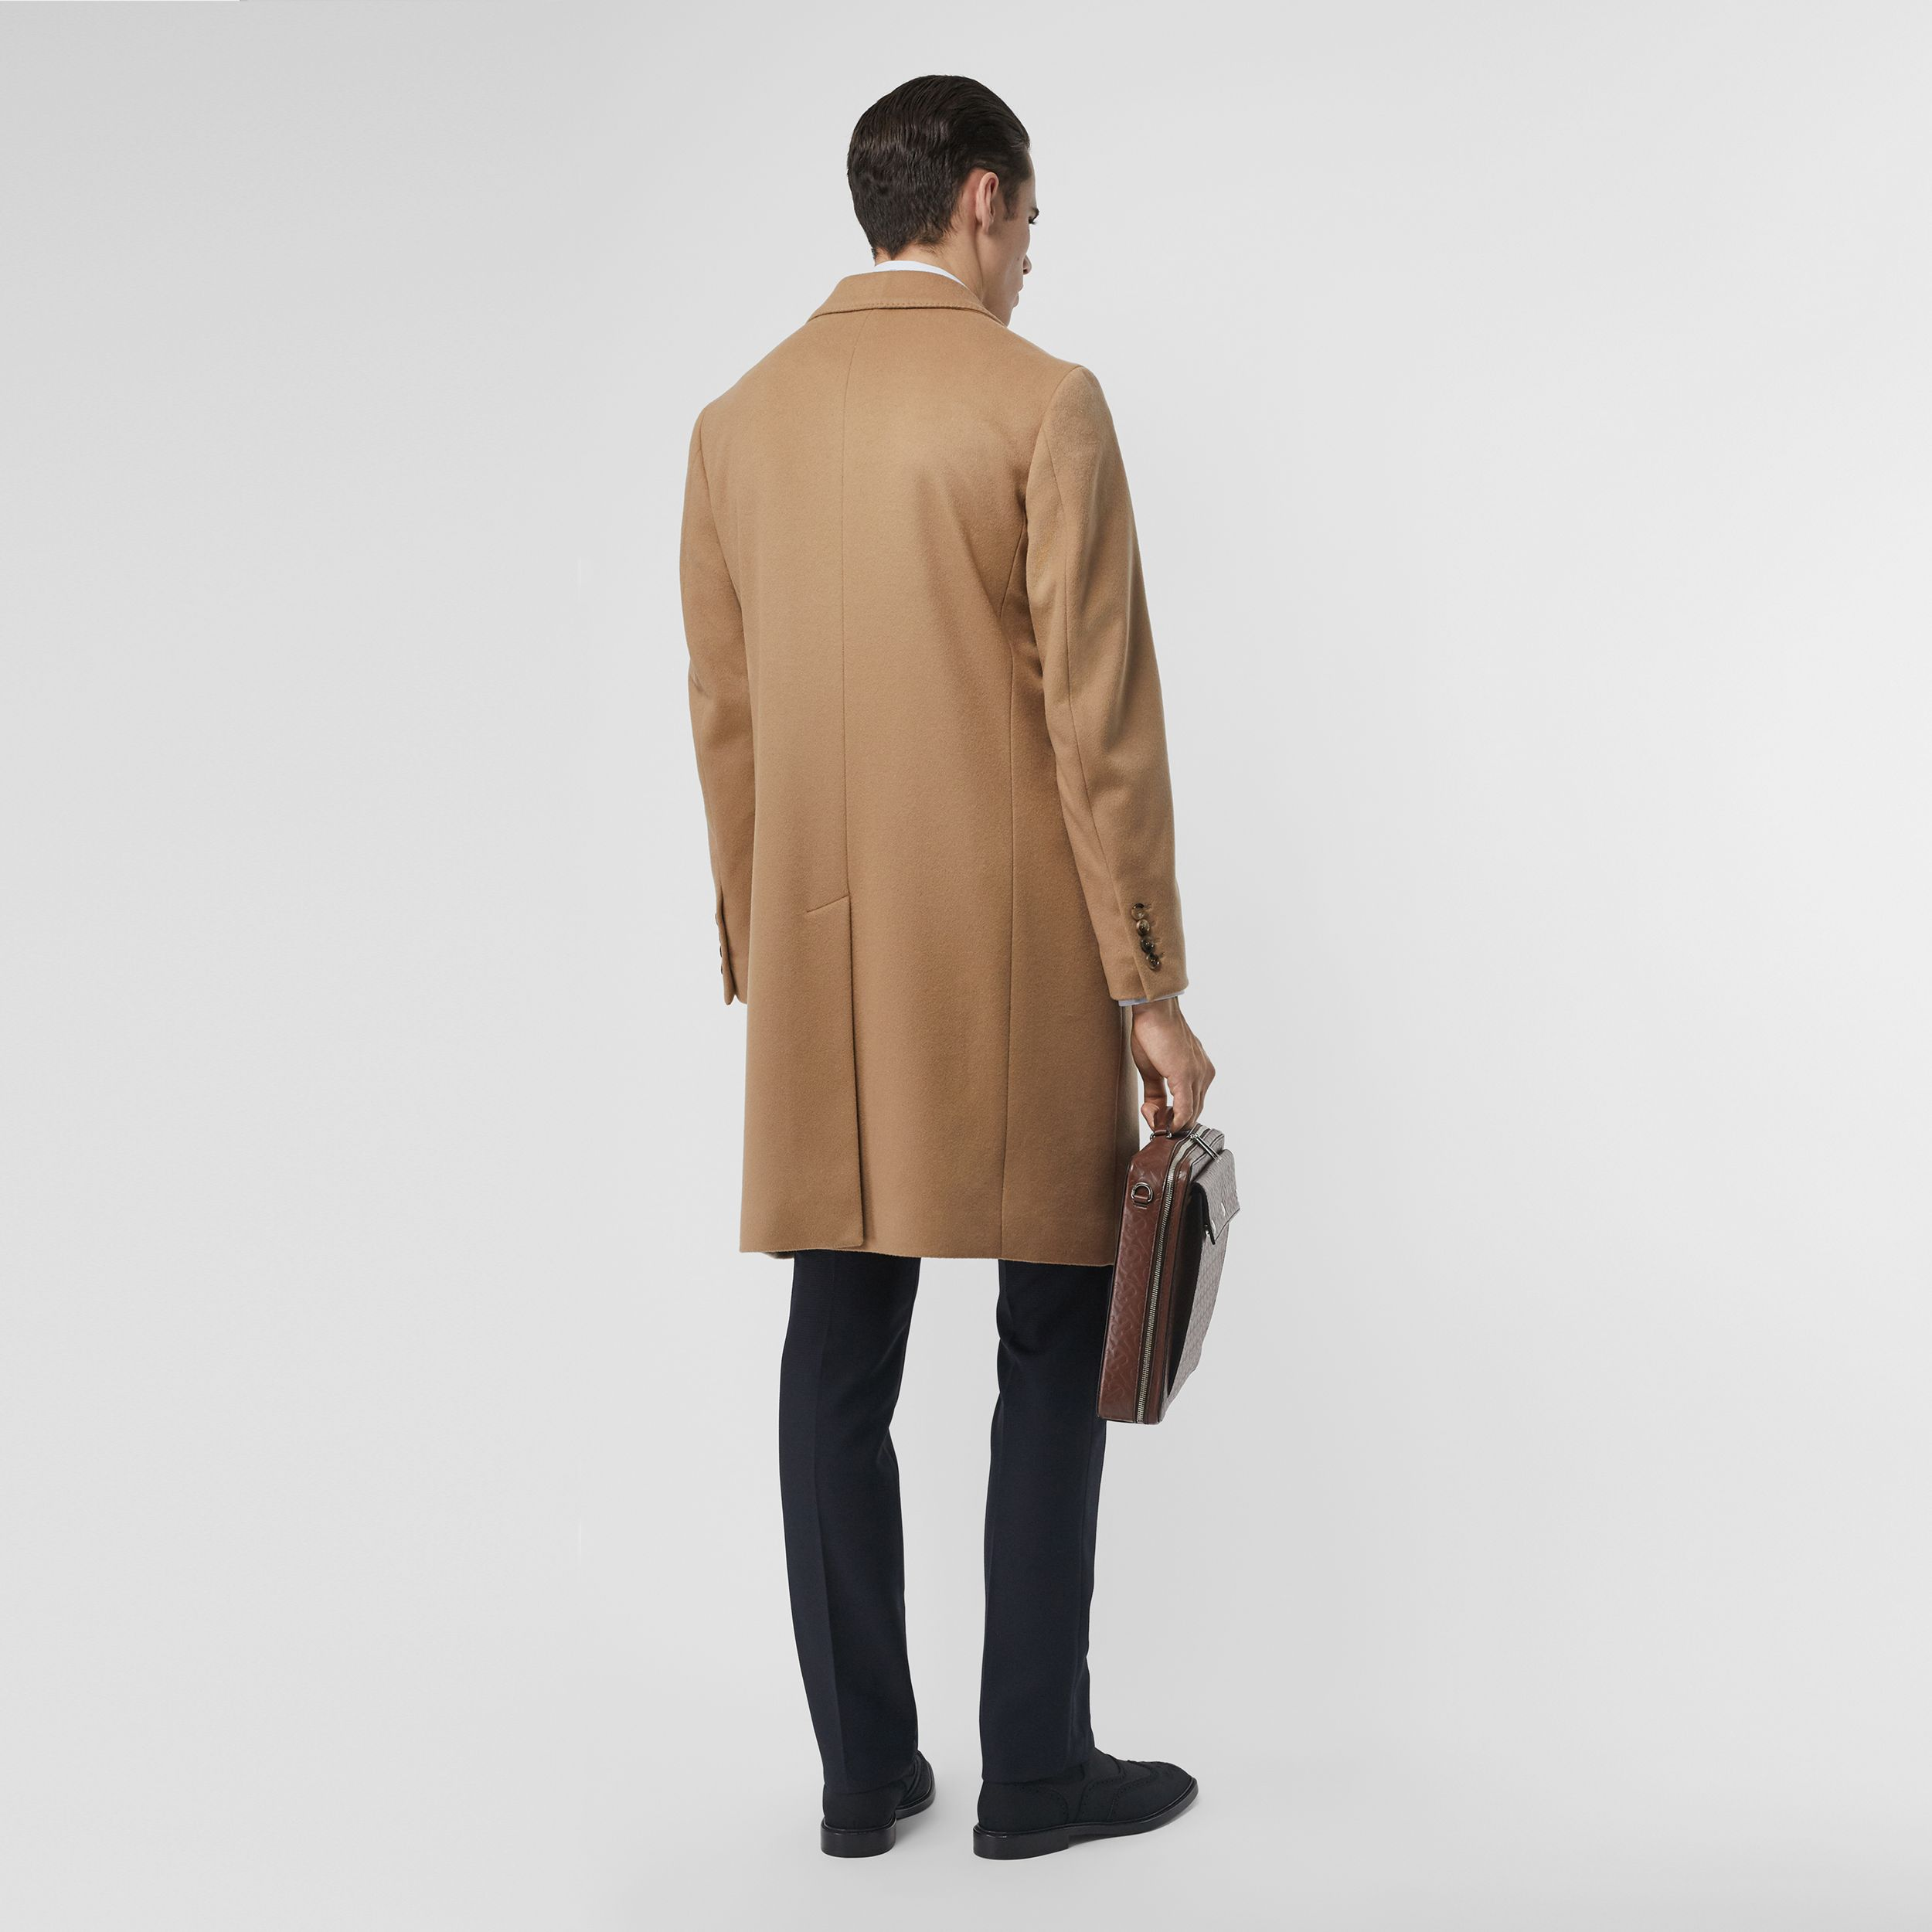 Wool Cashmere Tailored Coat in Camel - Men | Burberry - 3